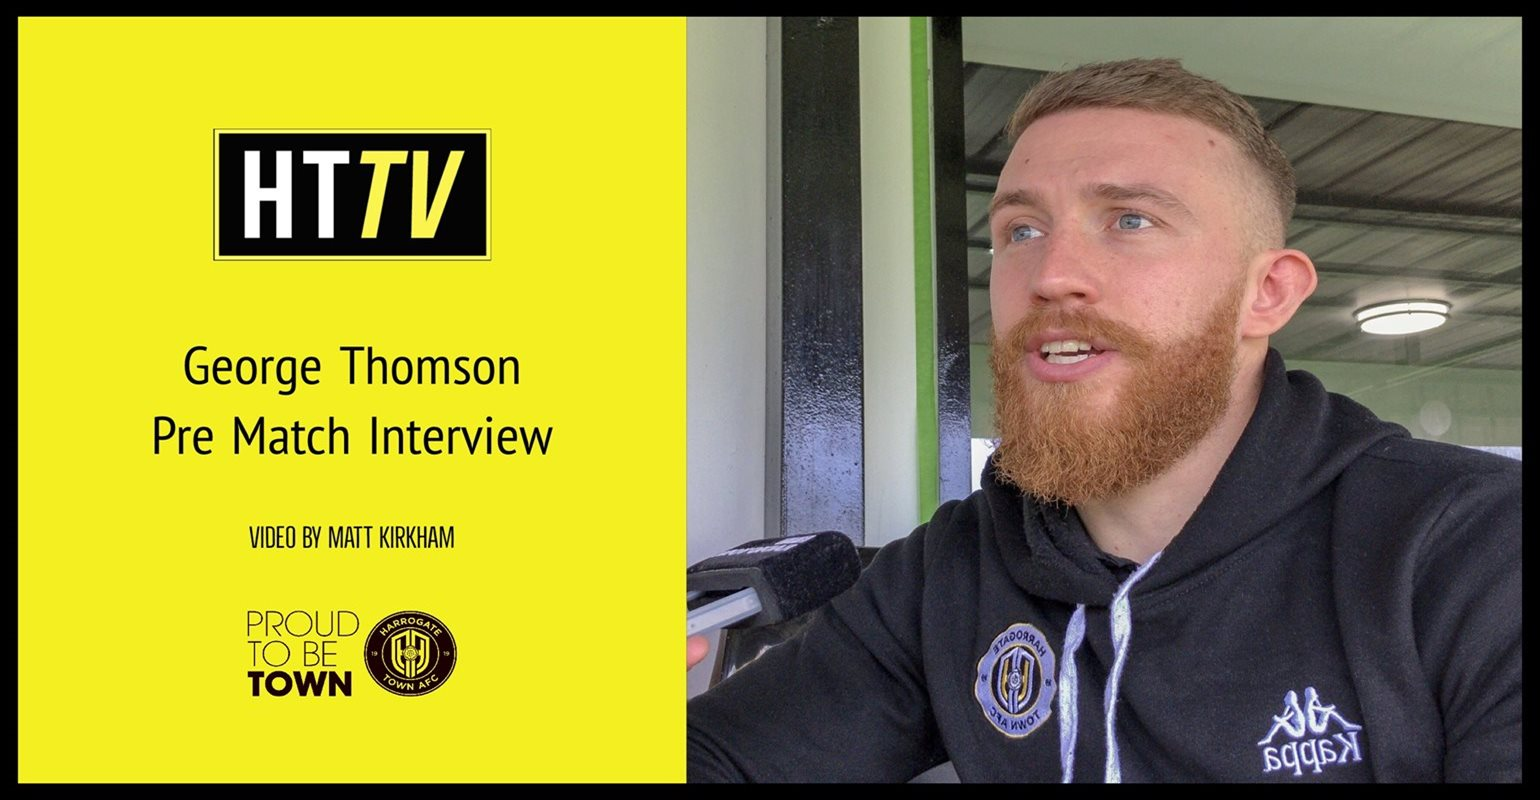 HTTV | George Thomson Pre Match Interview